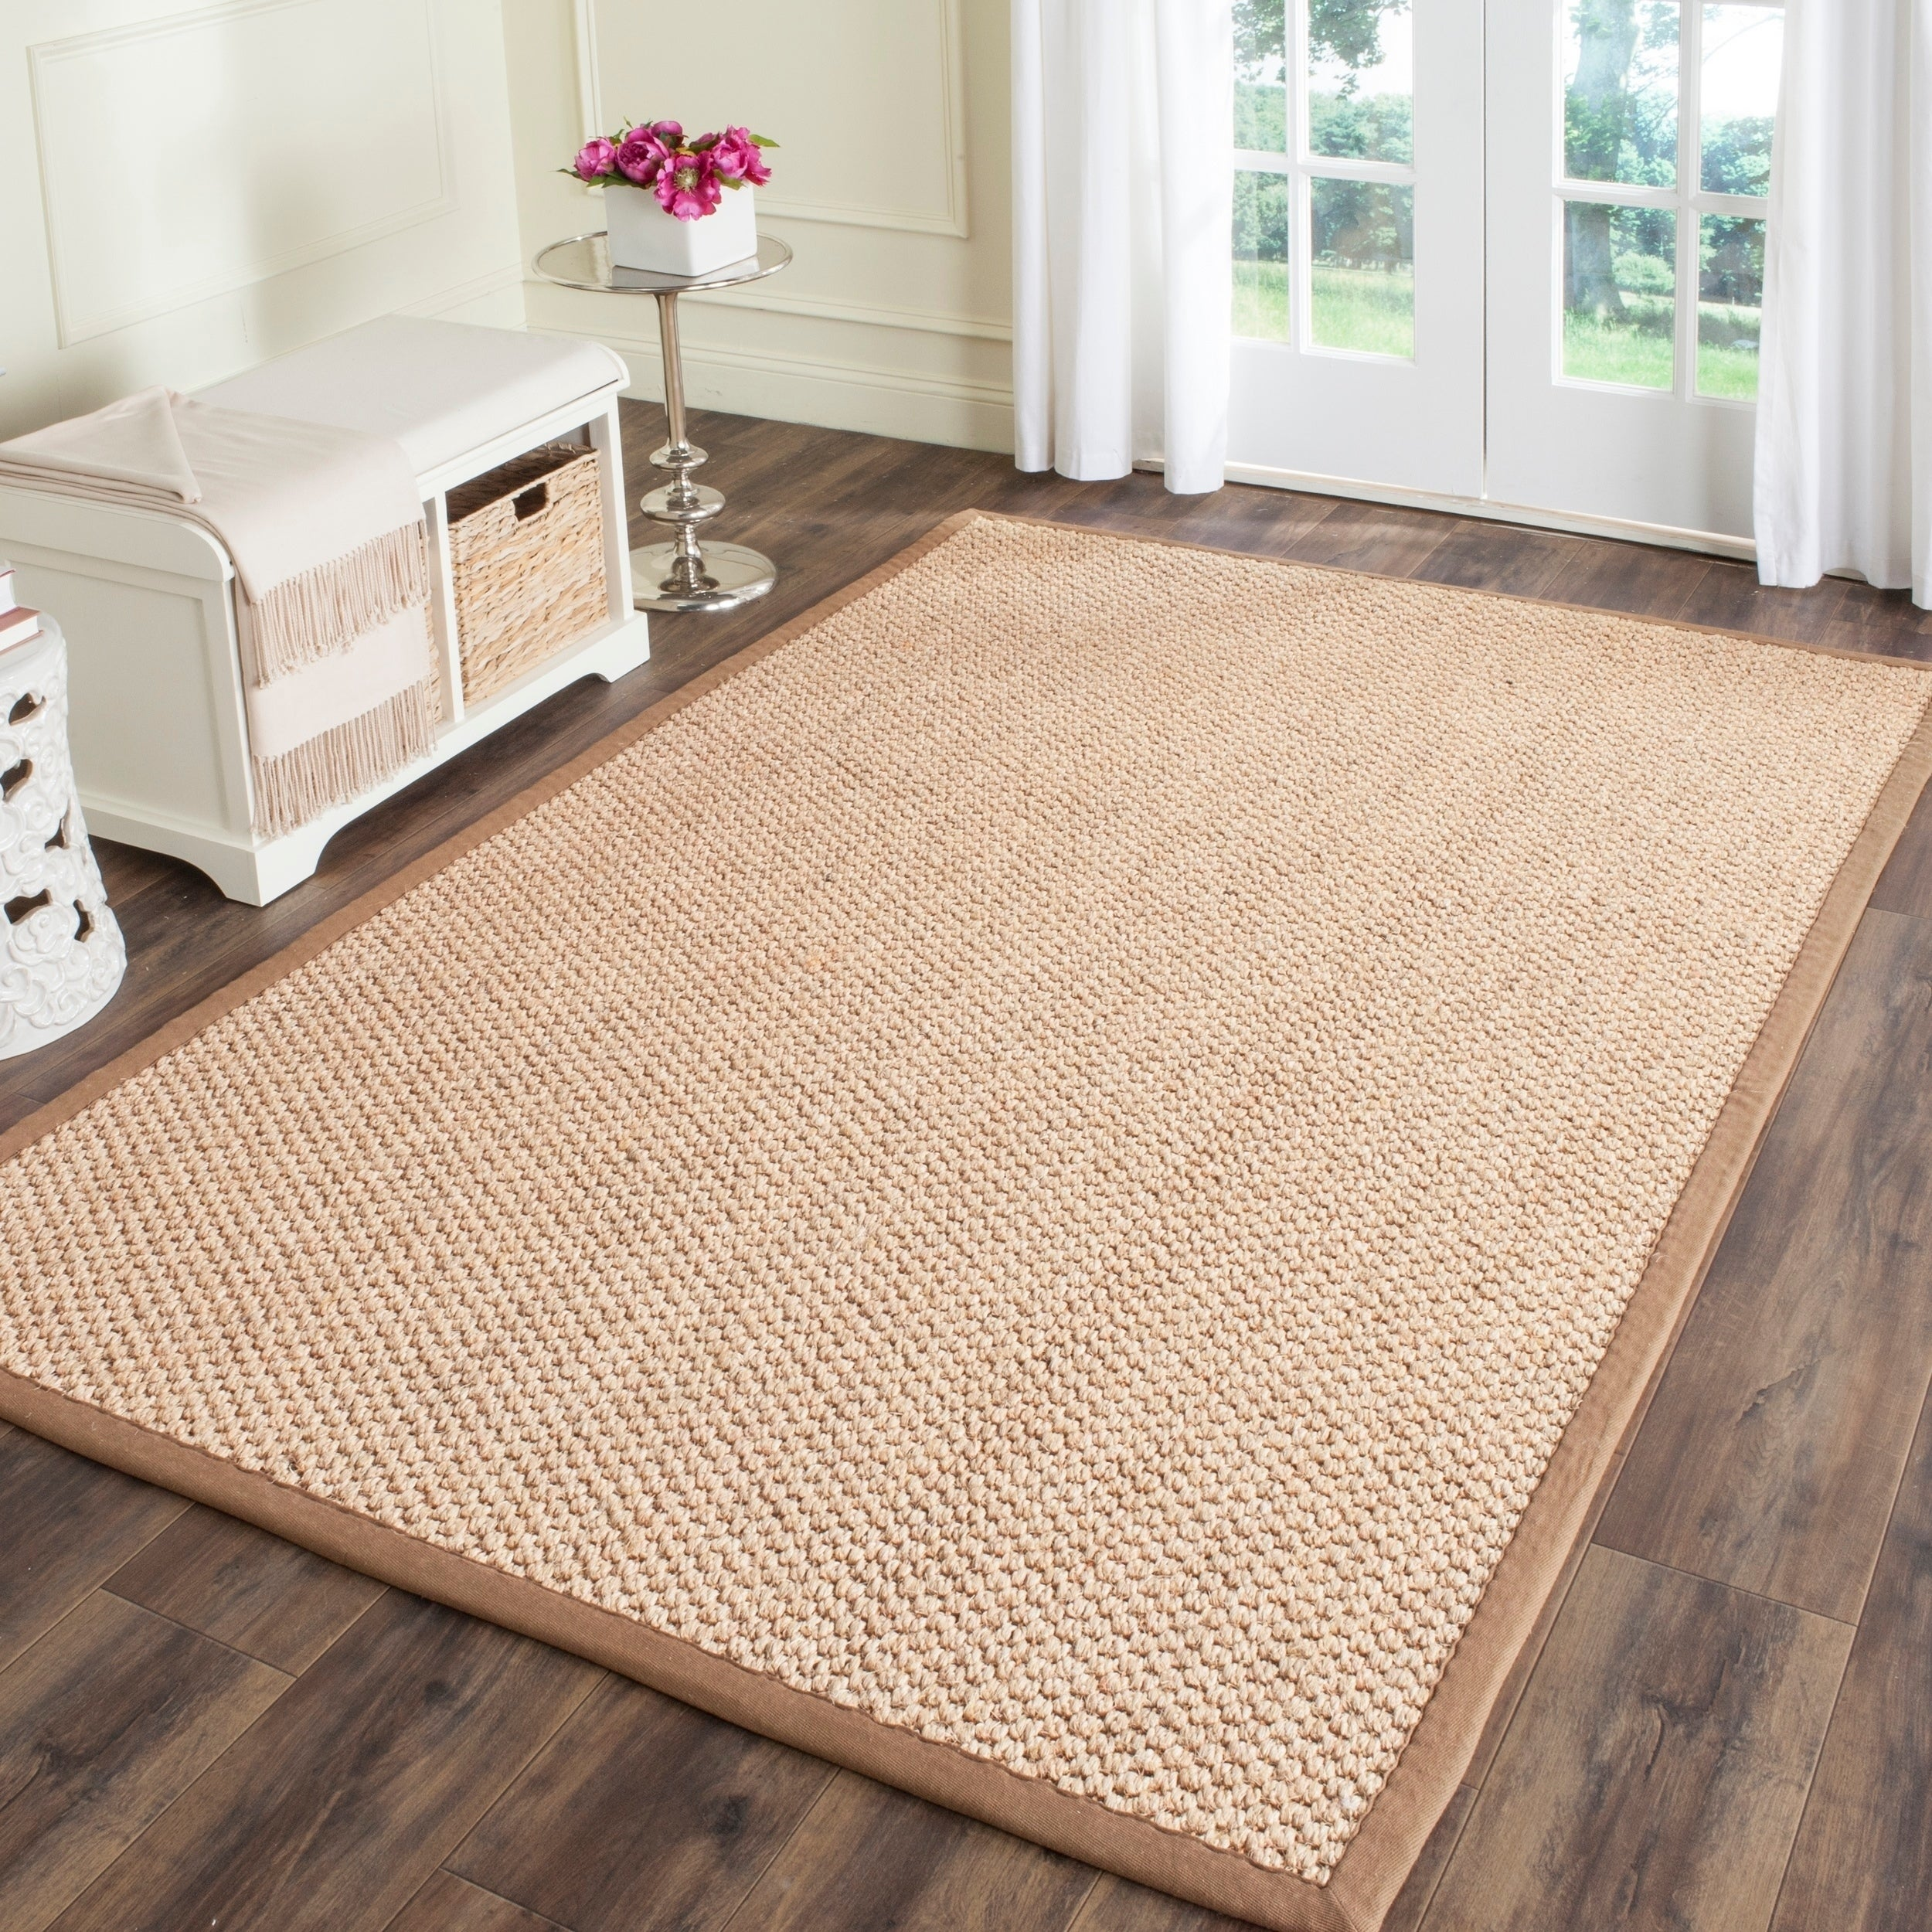 Sisal - what is it and what is it for? 31